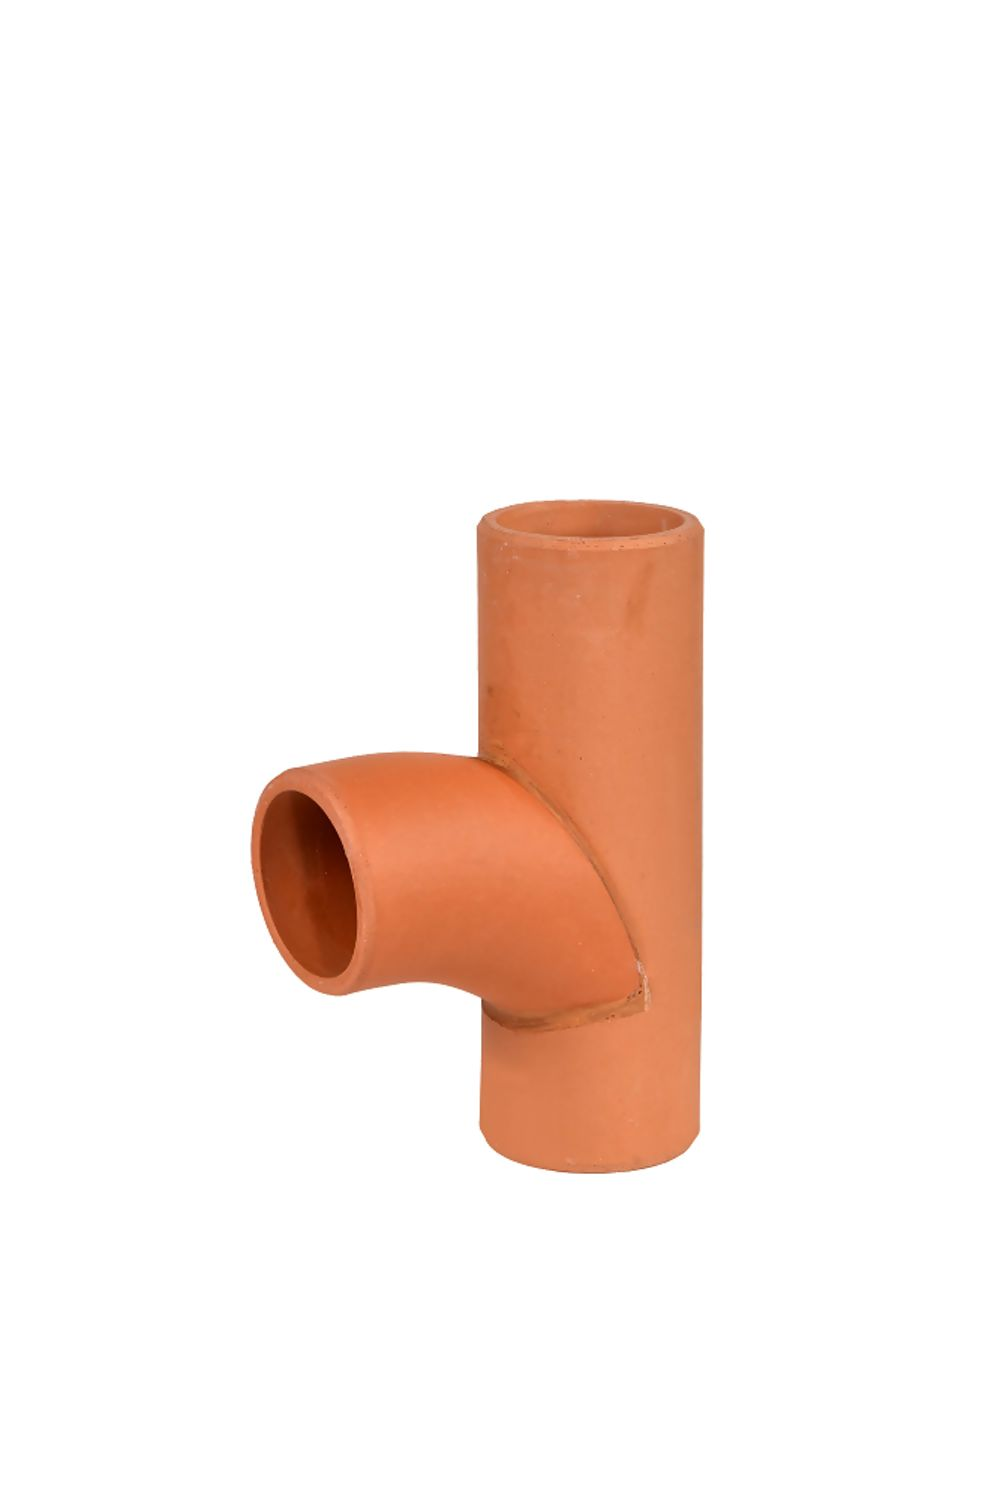 Supersleve Housedrain 100mm x 100mm Curved Square Junction Ref SJ2/1